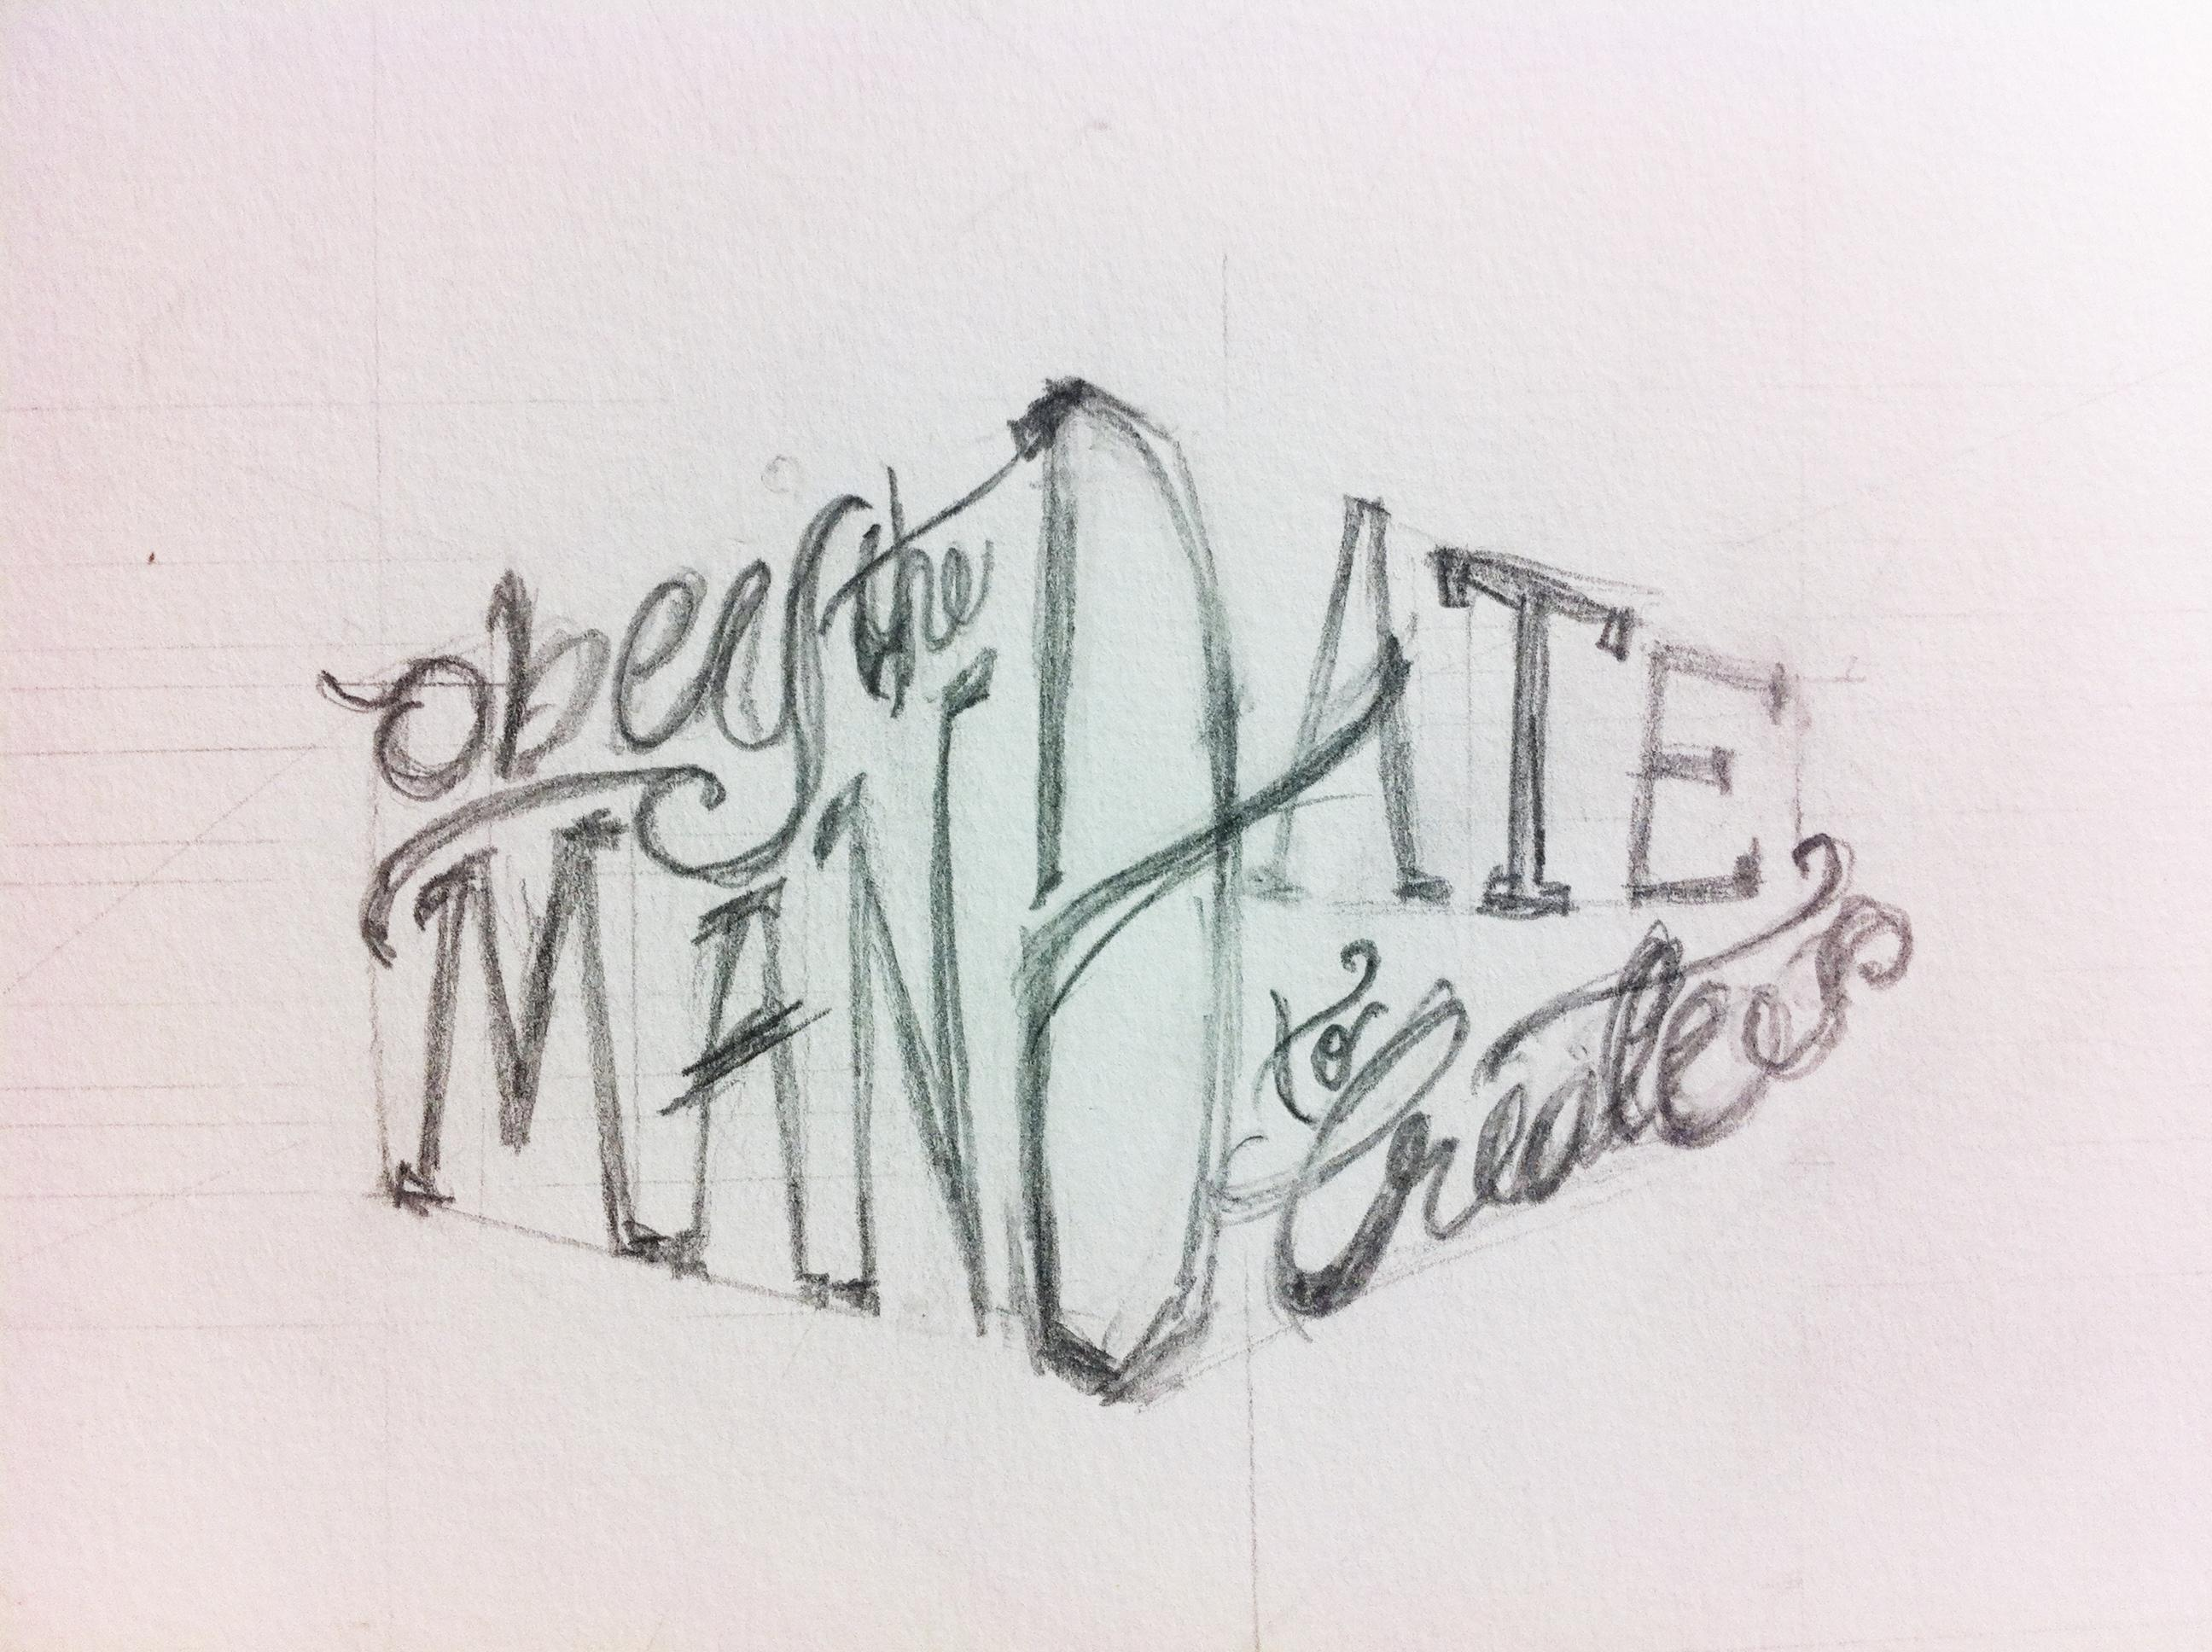 Obey the Mandate to Create - image 1 - student project